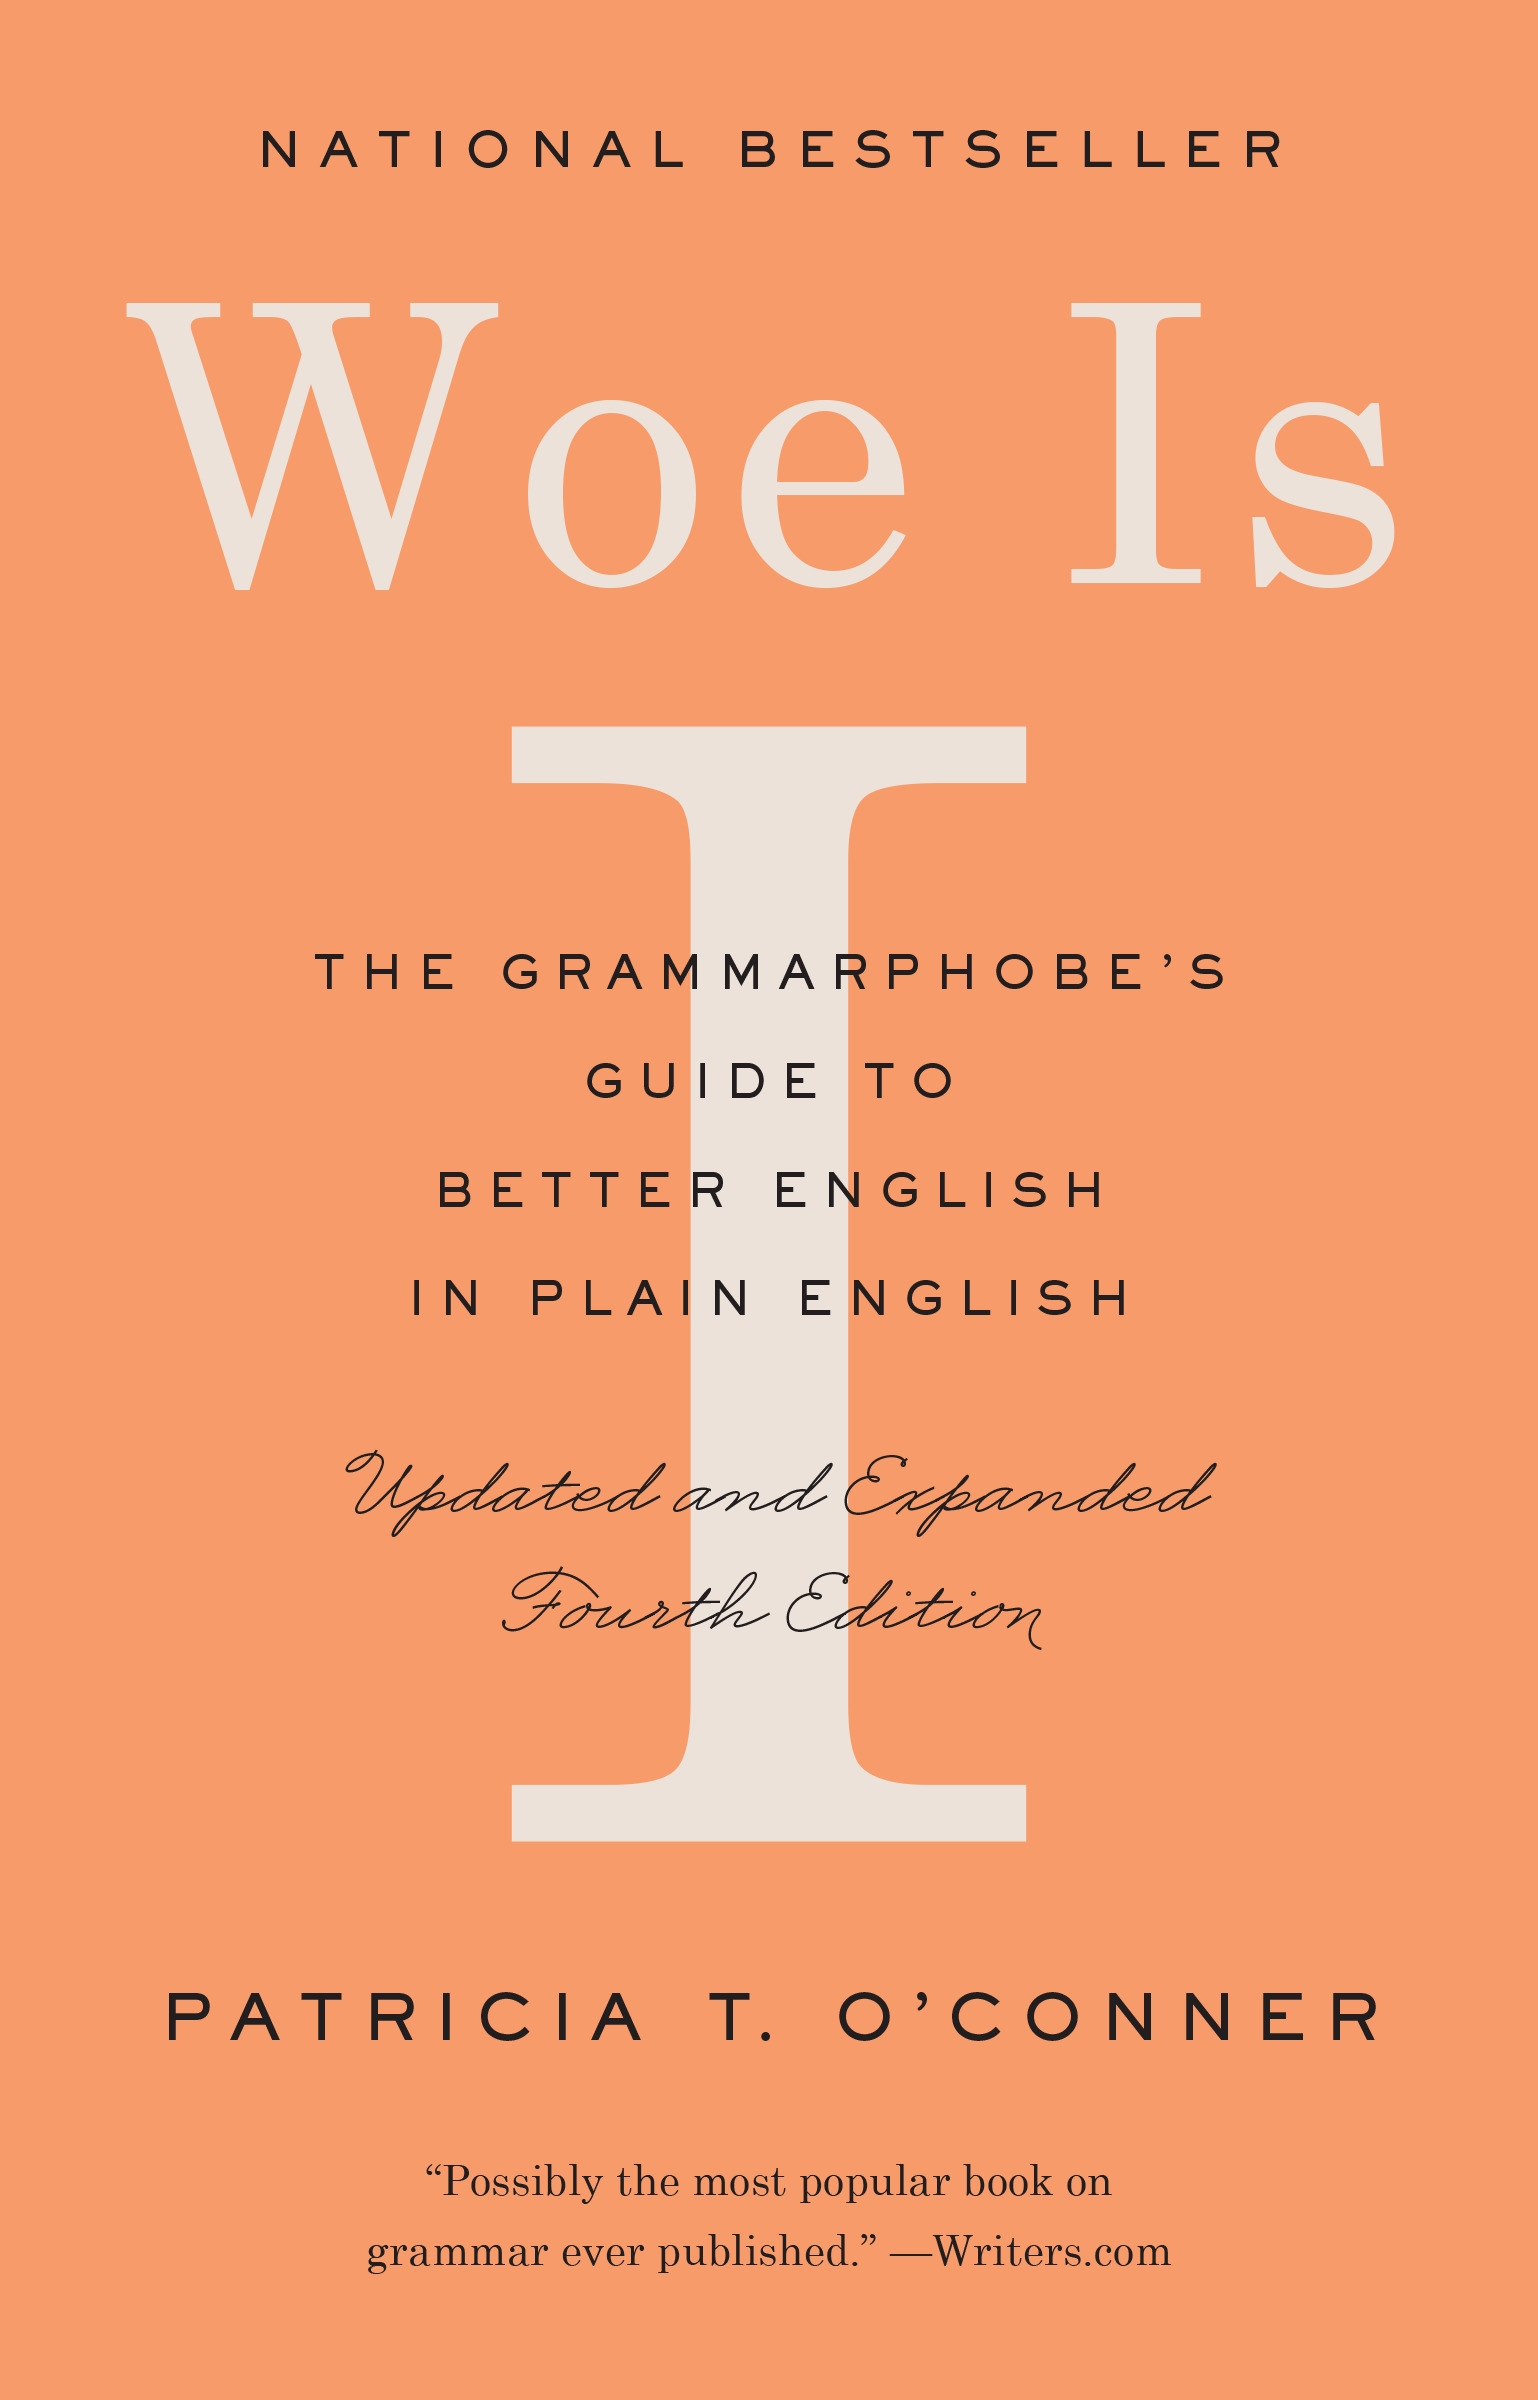 Woe Is I. The Grammarphobe's Guide to Better English in Plain English  (Fourth Edition). By Patricia T. O'Conner